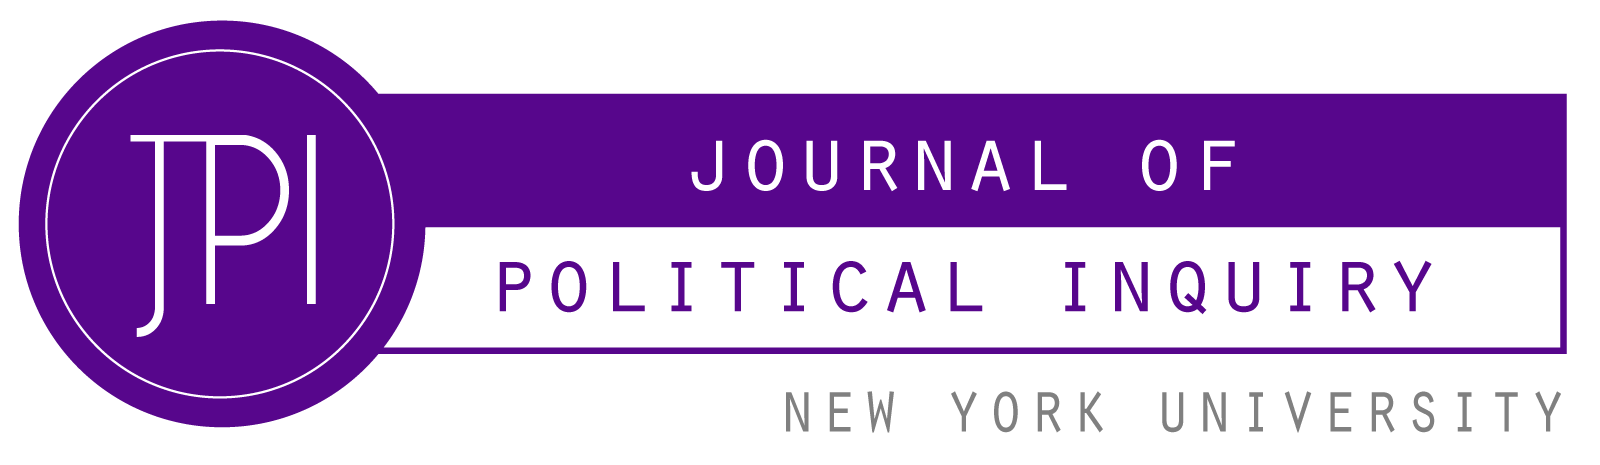 Journal of Political Inquiry